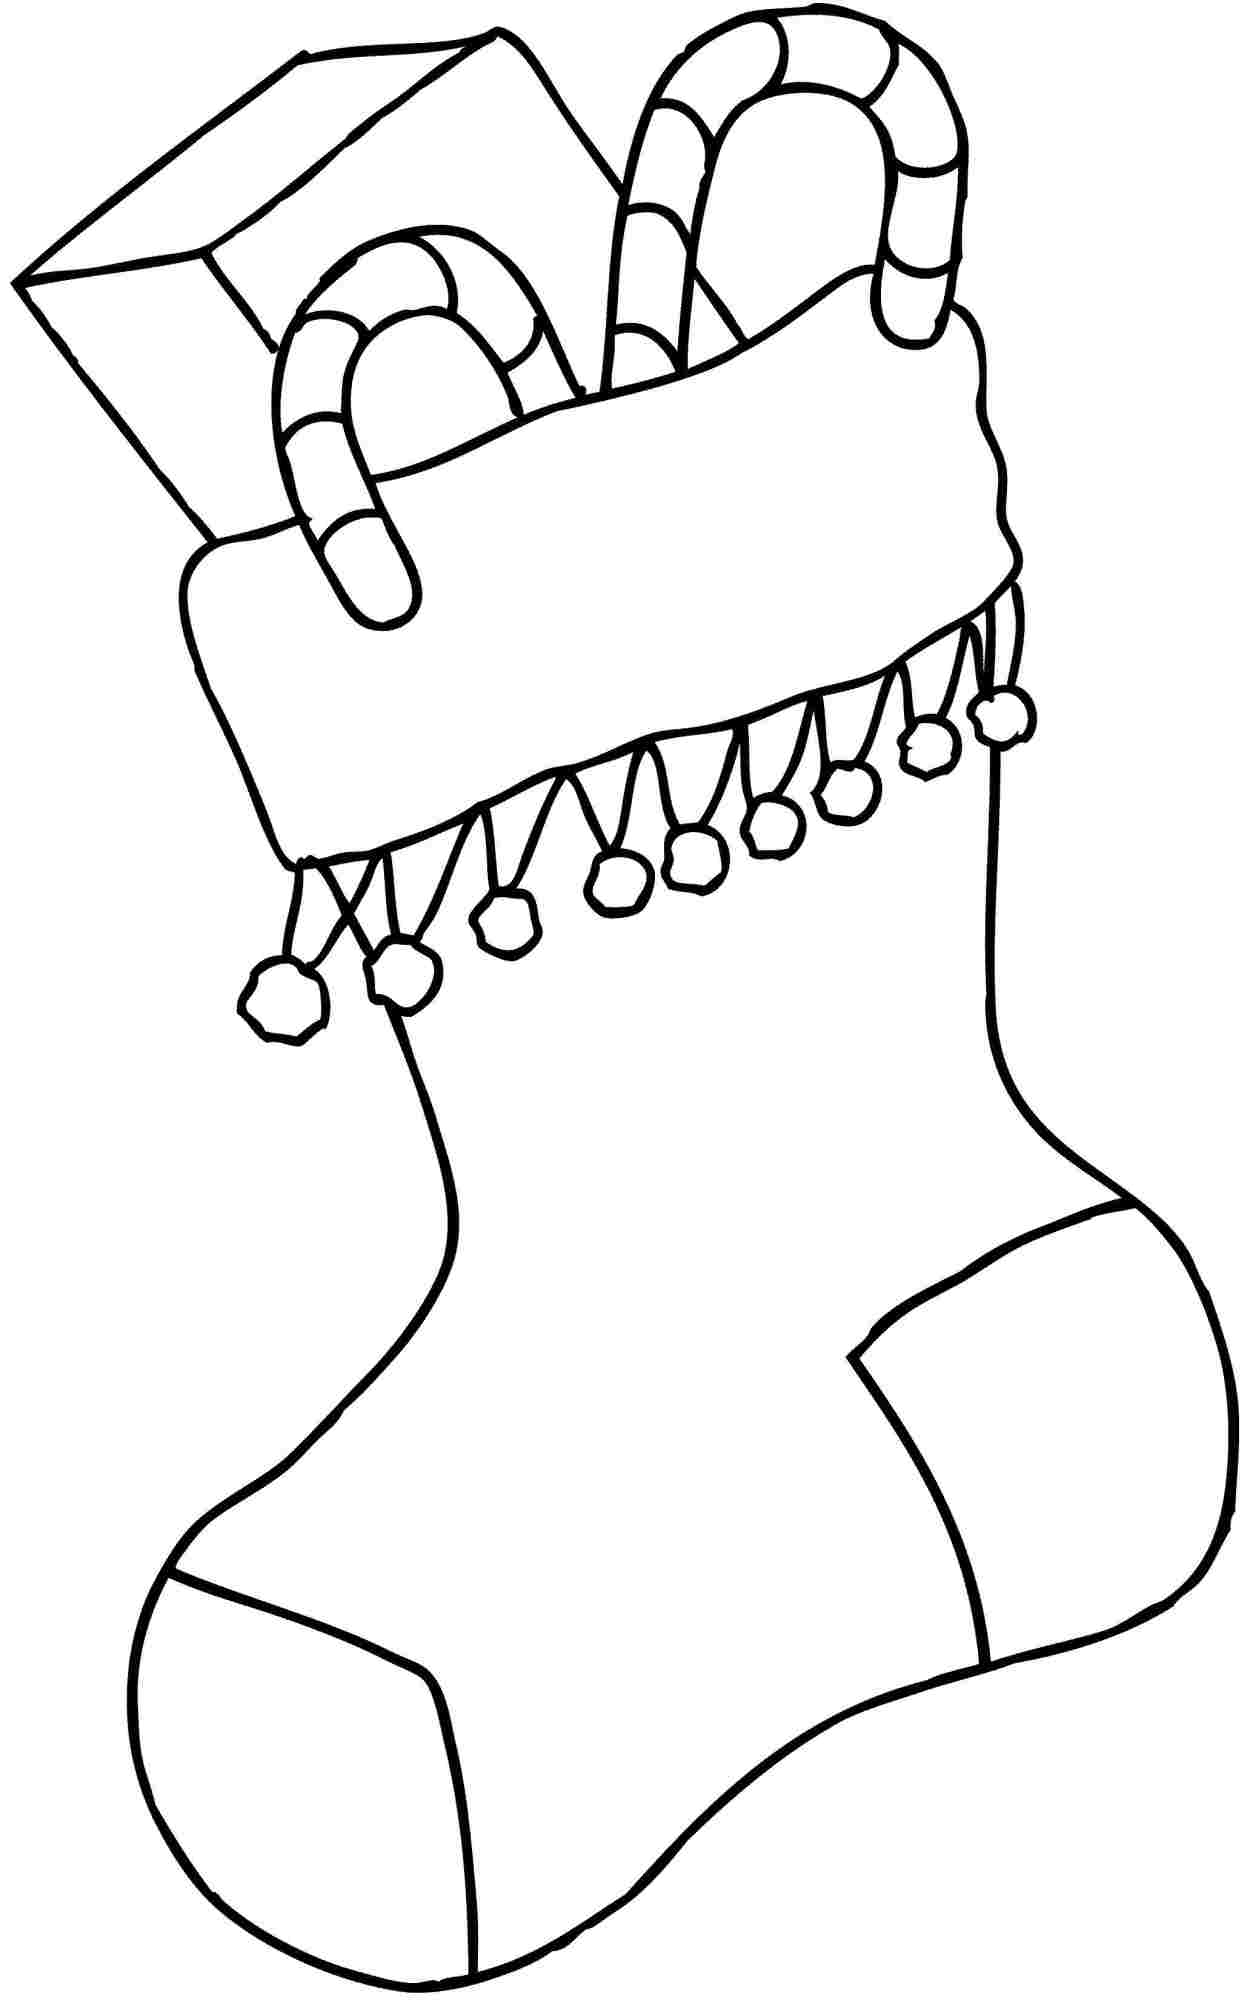 christmas stocking coloring sheets printable christmas stocking coloring pages best coloring pages printable coloring sheets stocking christmas